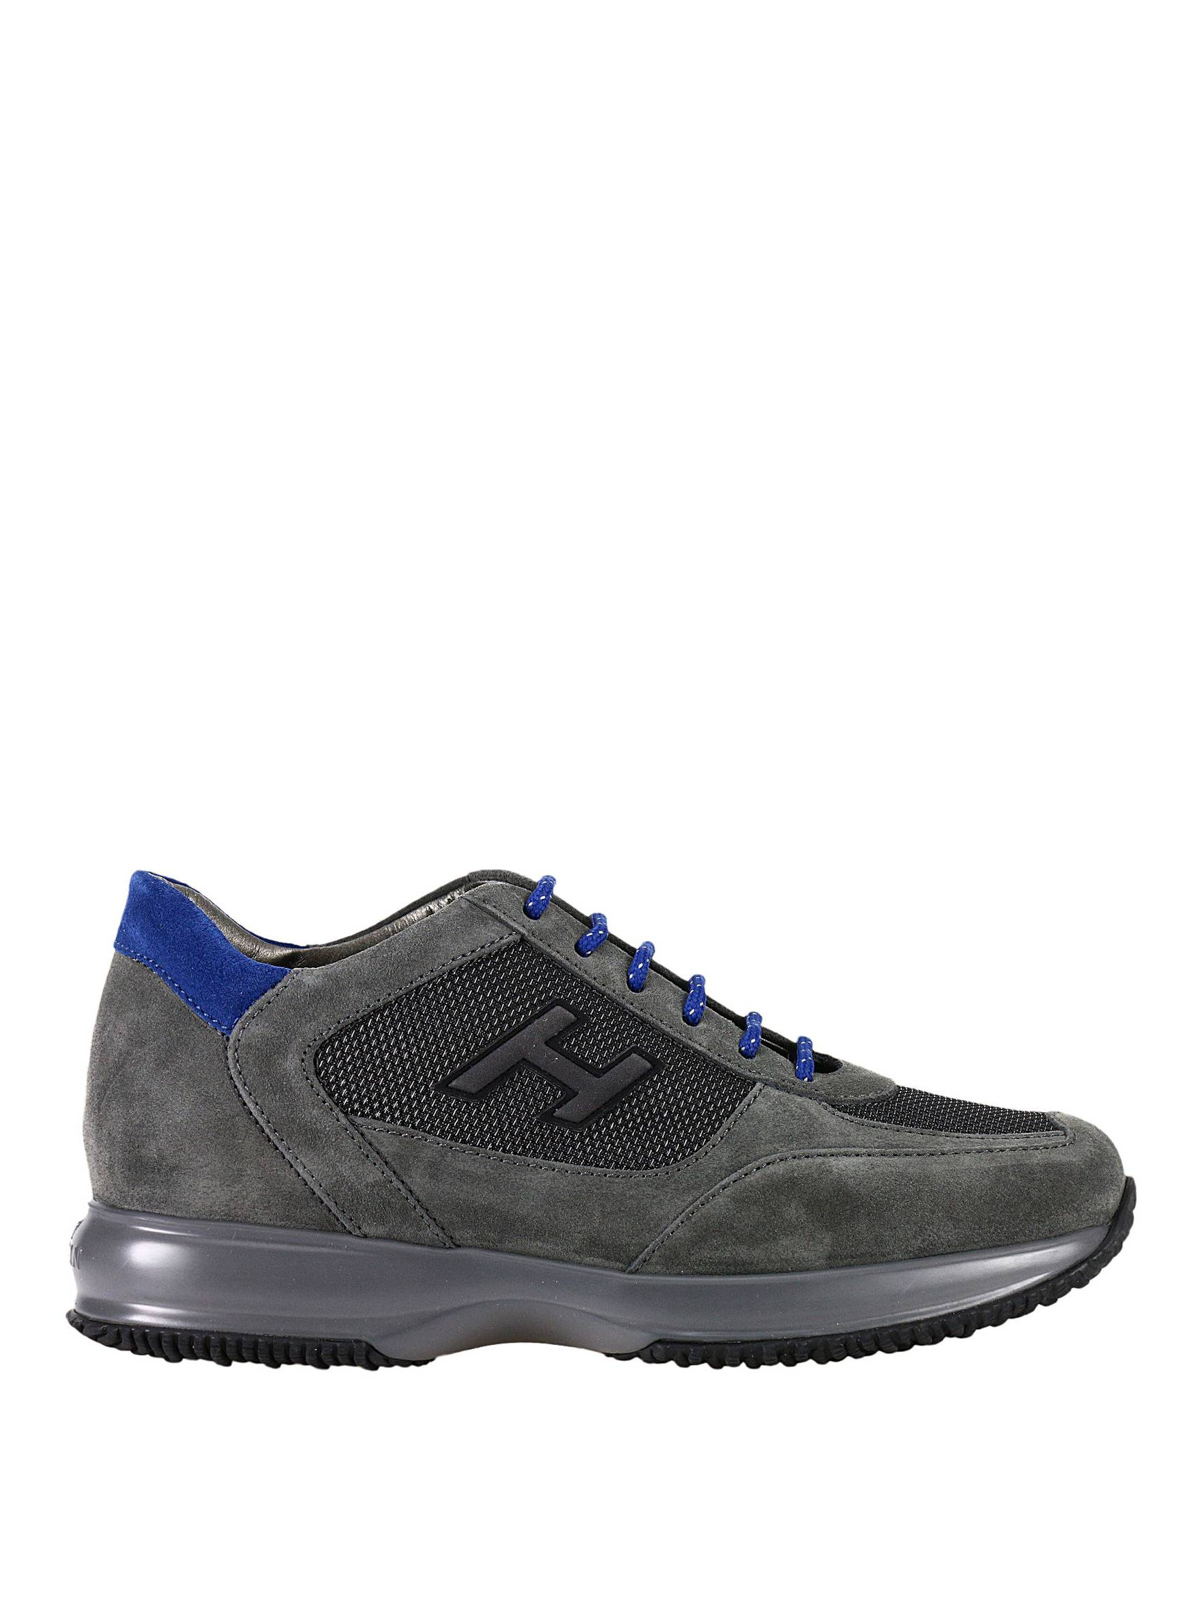 c11847b2ff1f Hogan - New Interactive H Flock grey shoes - trainers ...